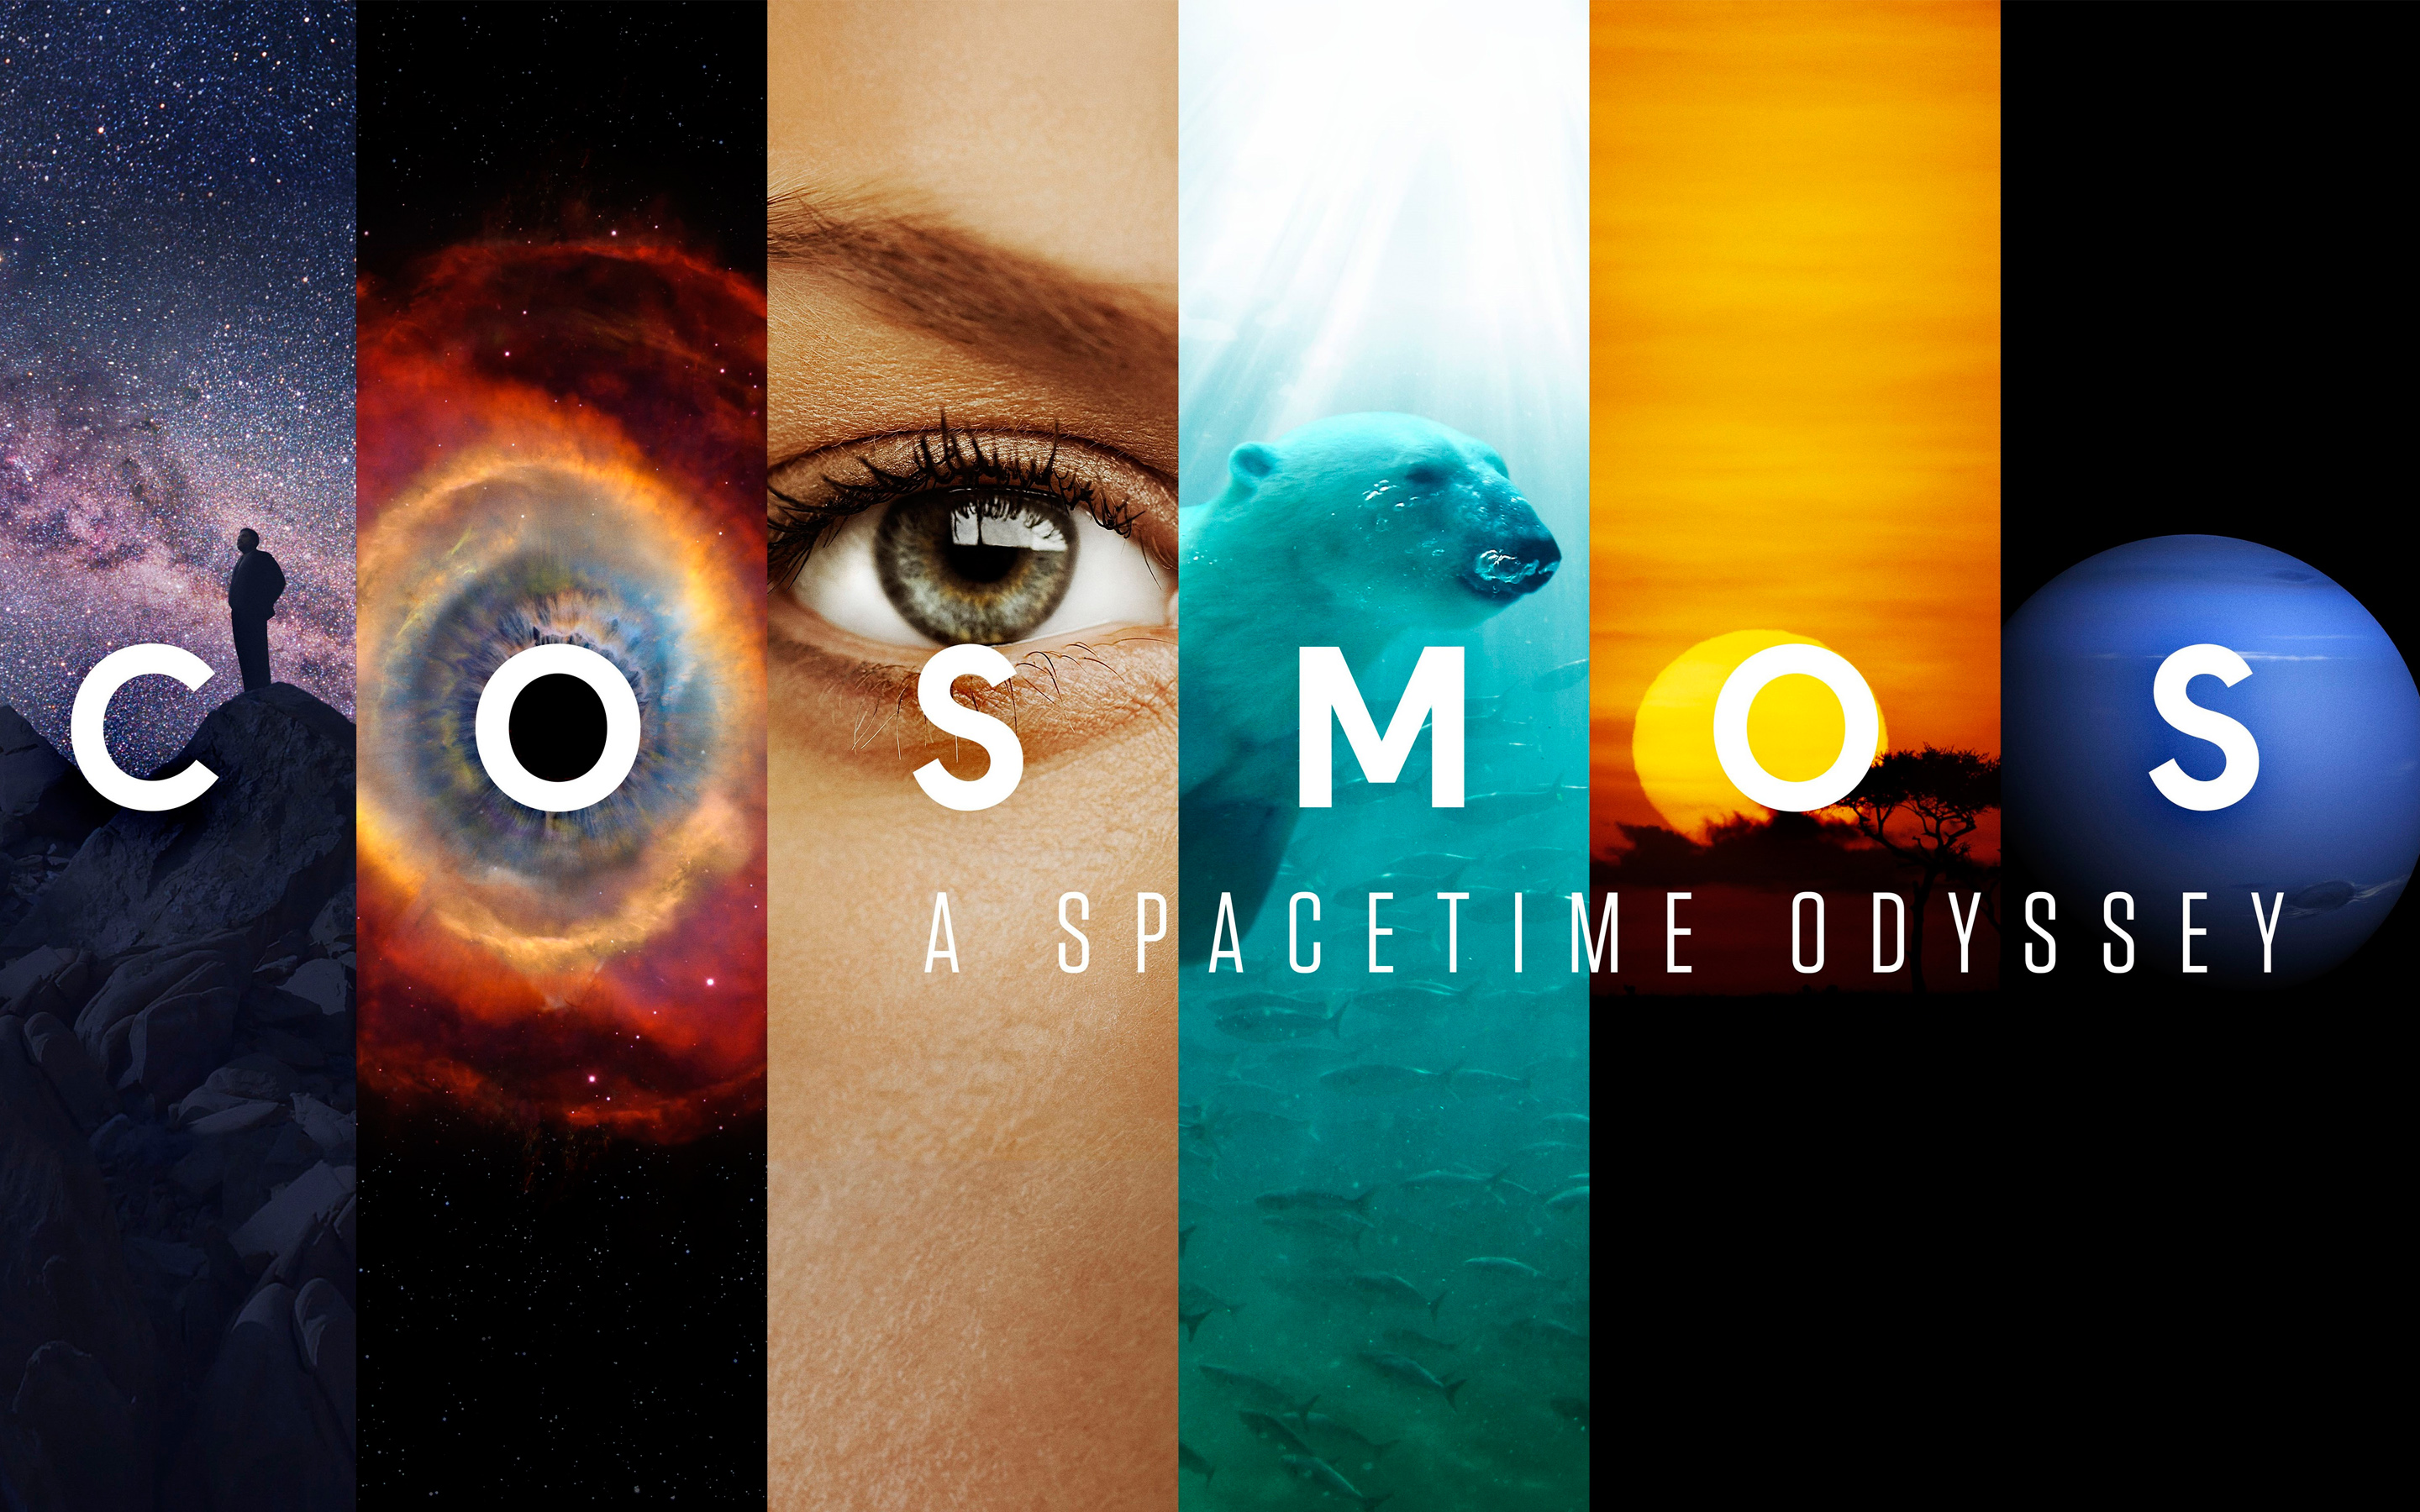 Cosmos A SpaceTime Odyssey wallpaper